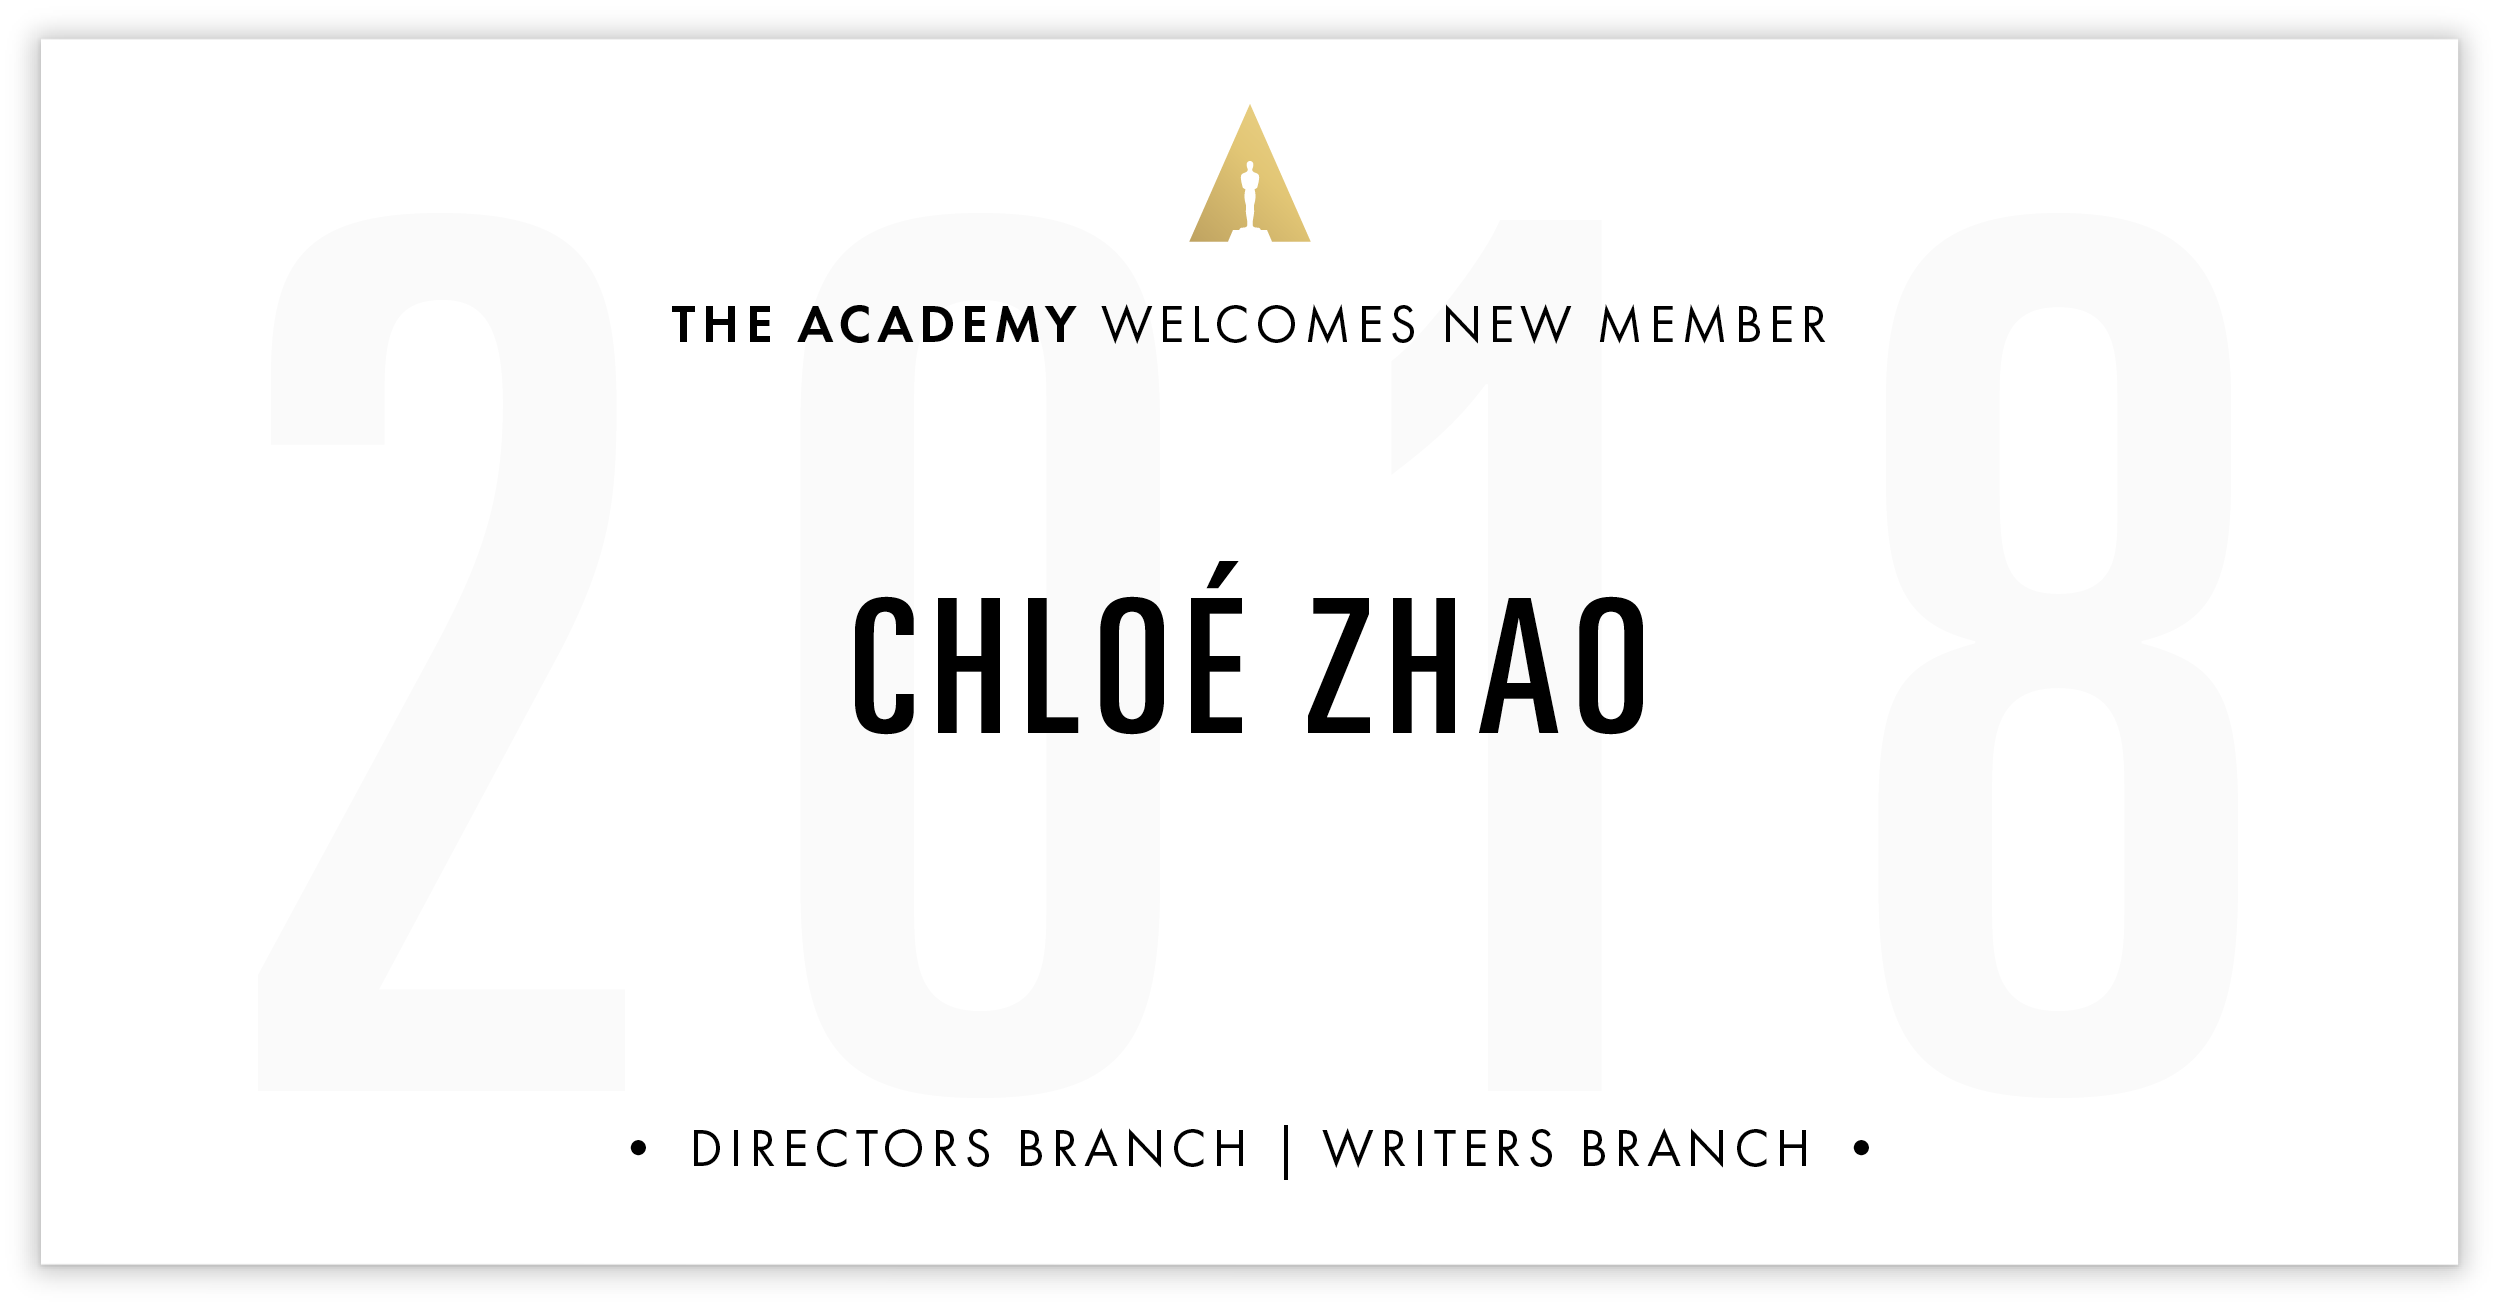 Chloé Zhao is invited!